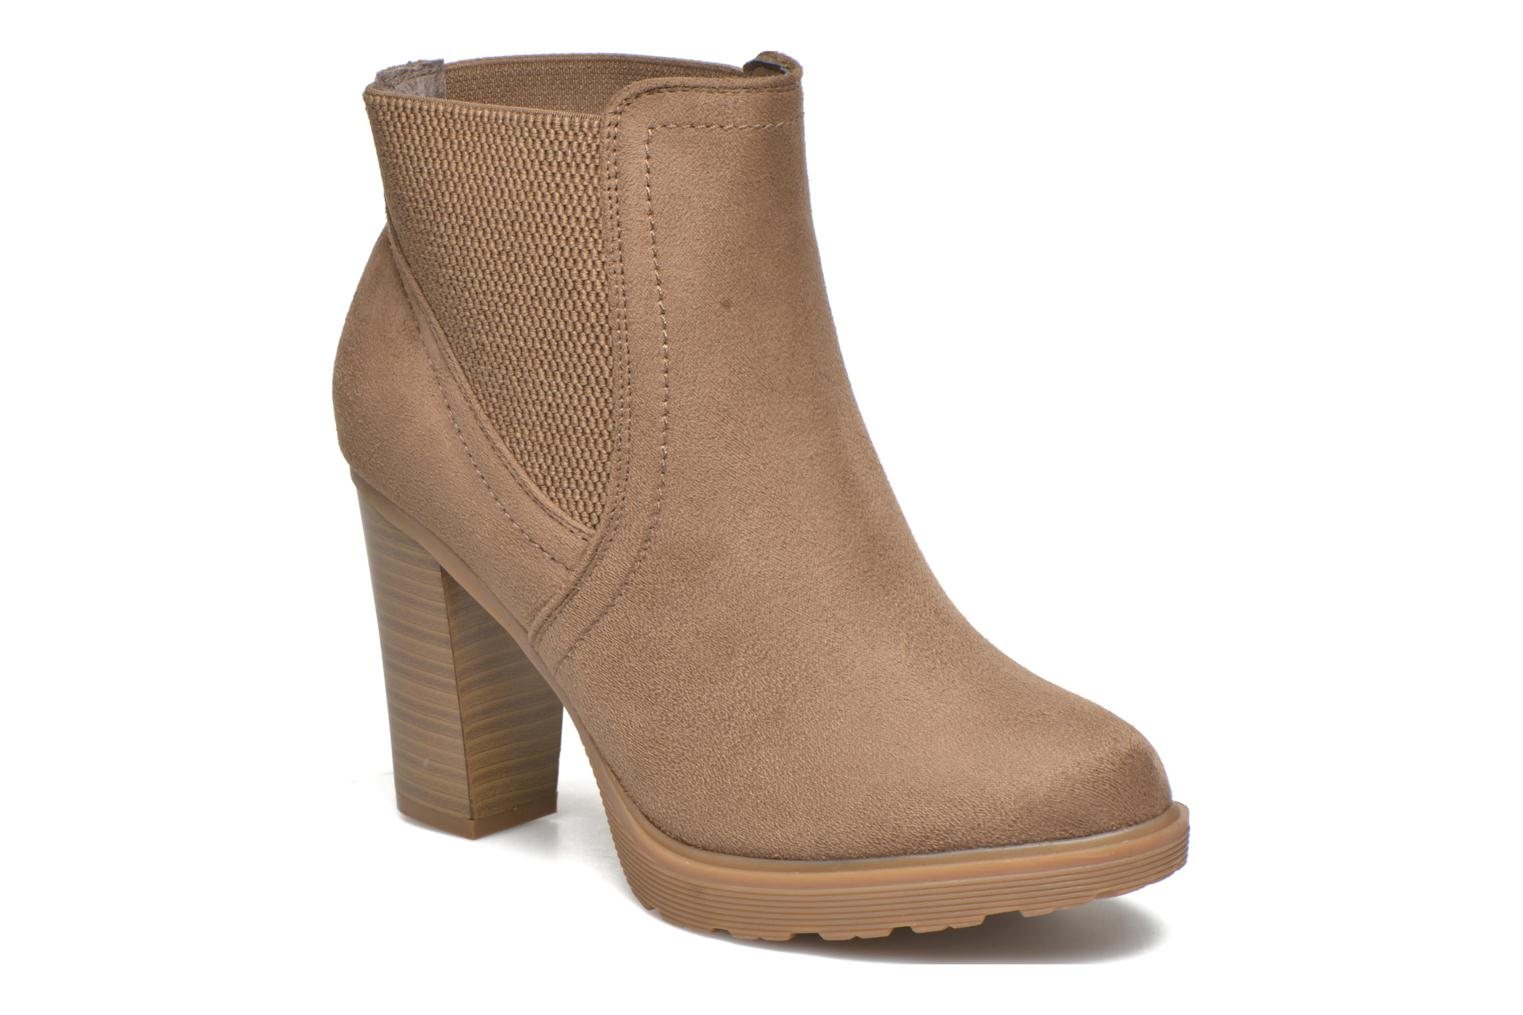 Marques Chaussure femme I Love Shoes femme THASSE Taupe MF